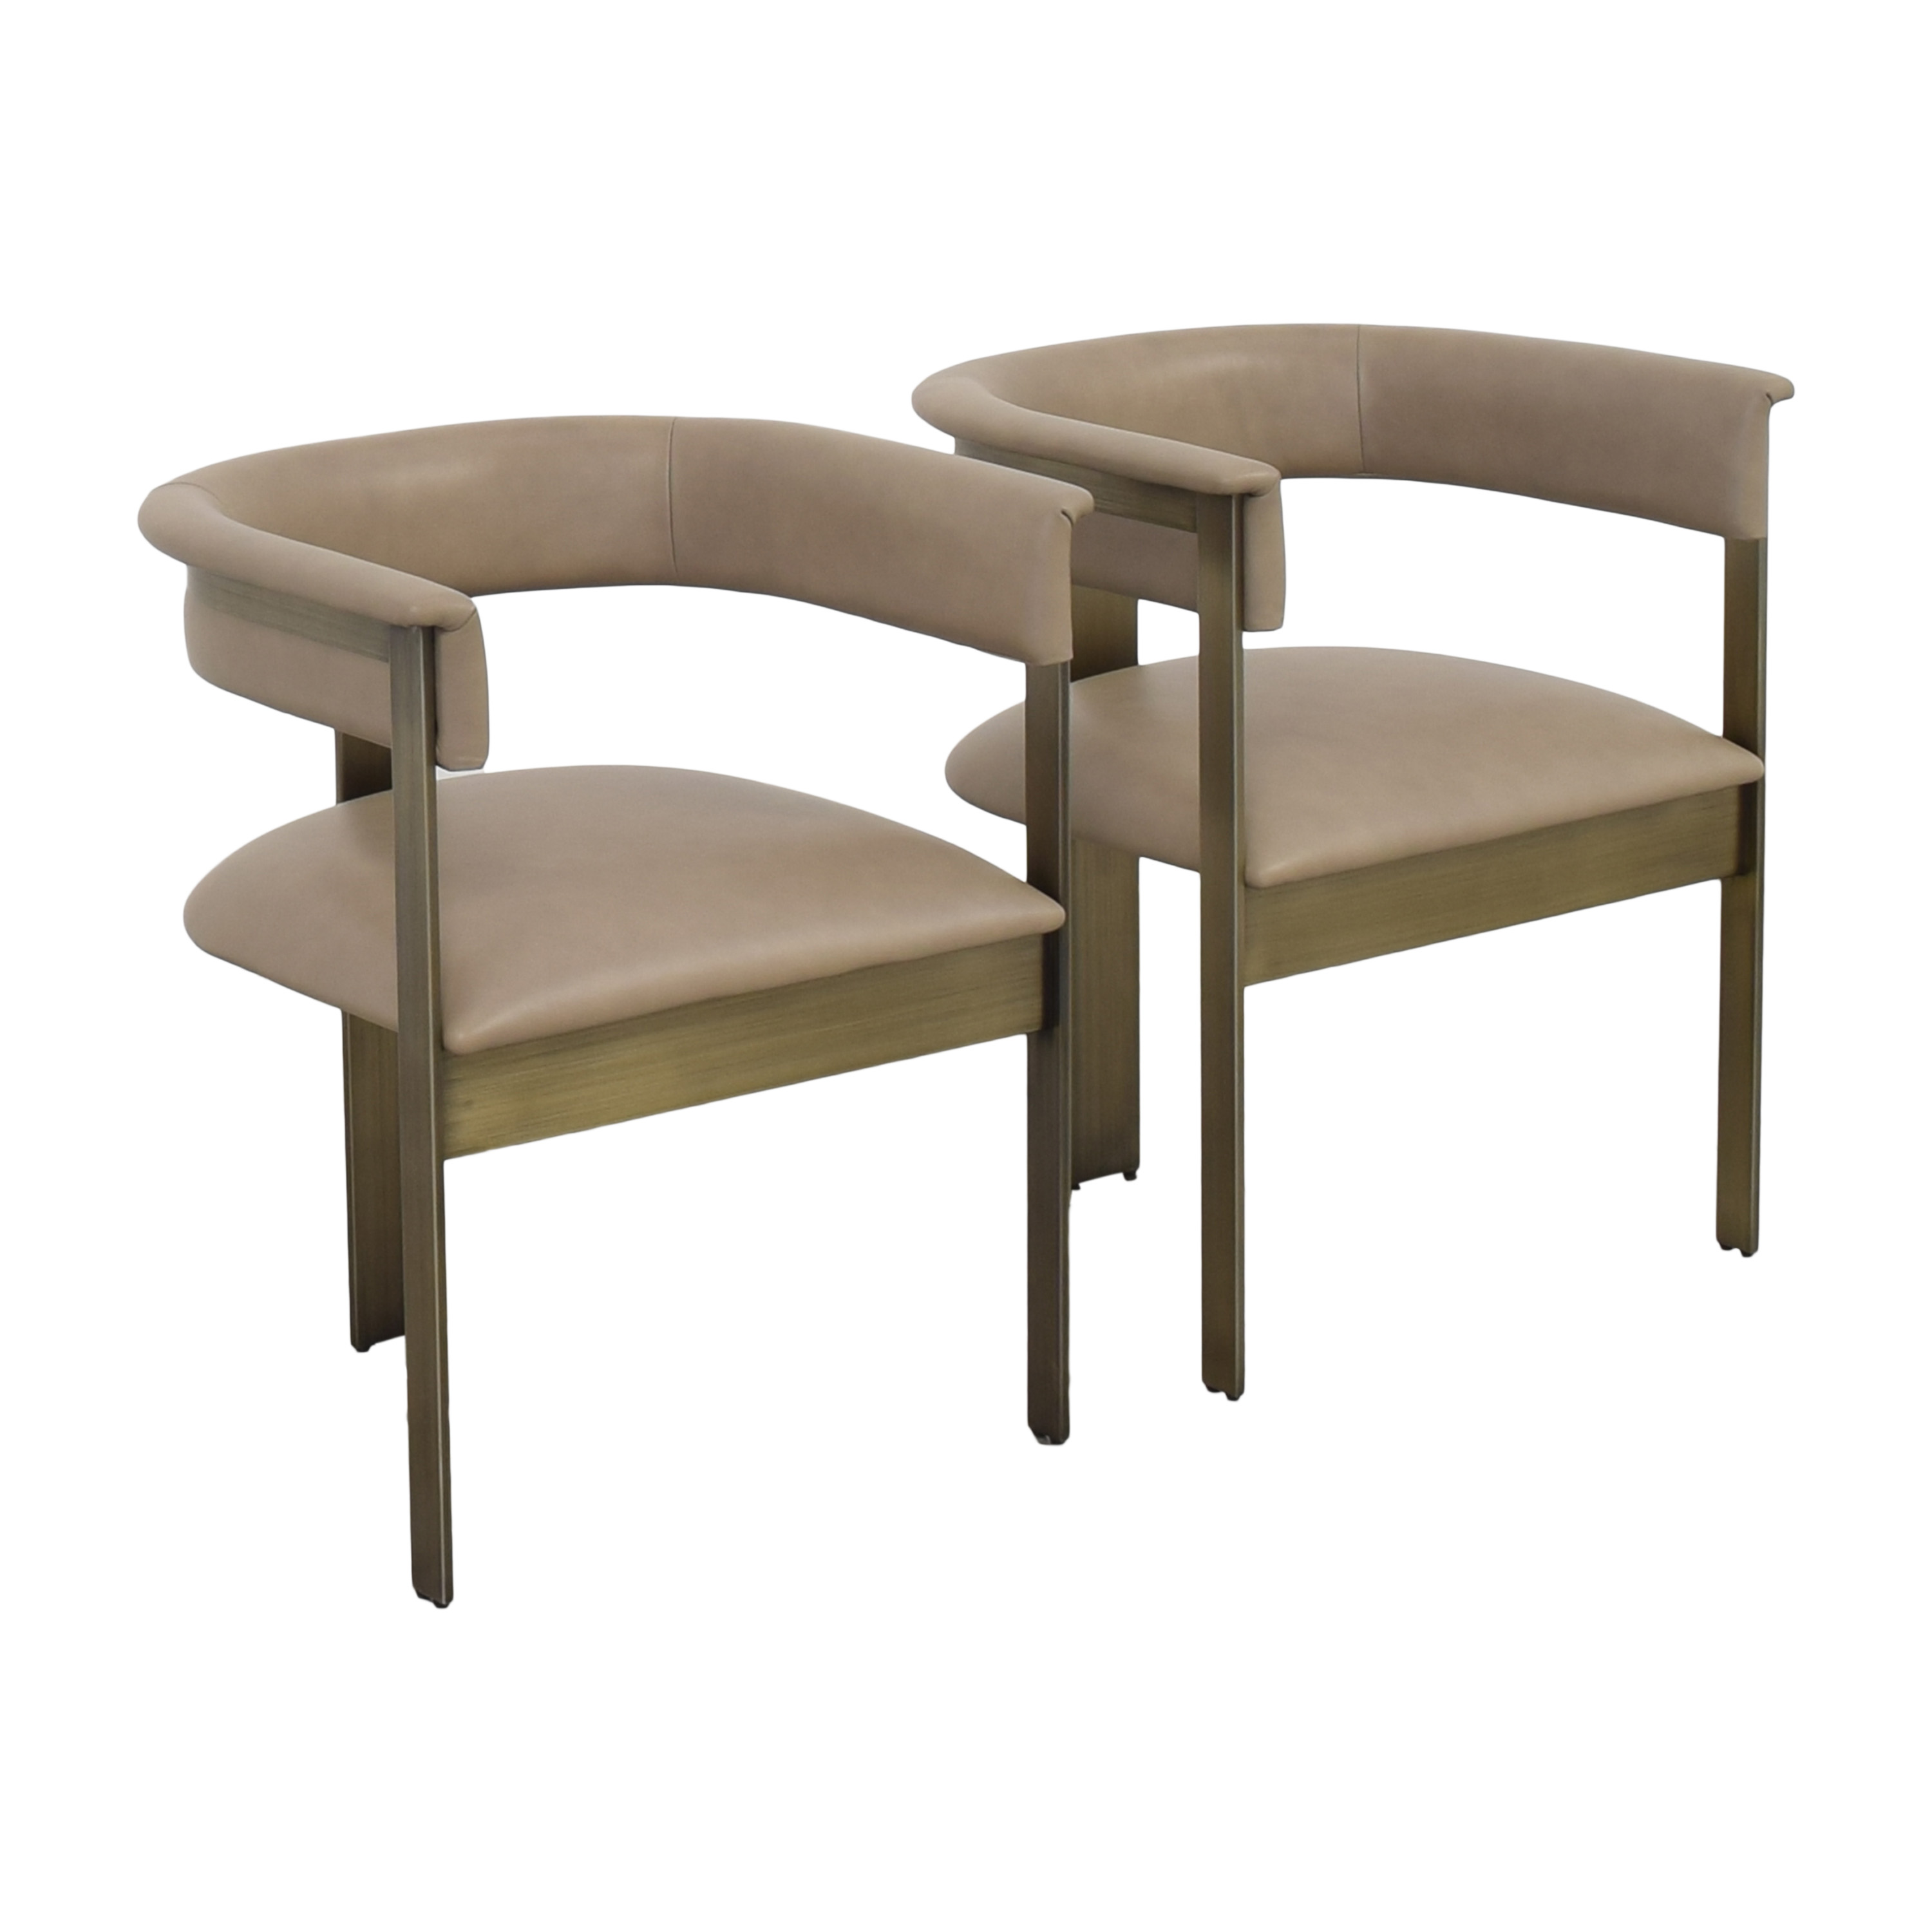 Interlude Home Darcy Dining Arm Chairs Interlude Home